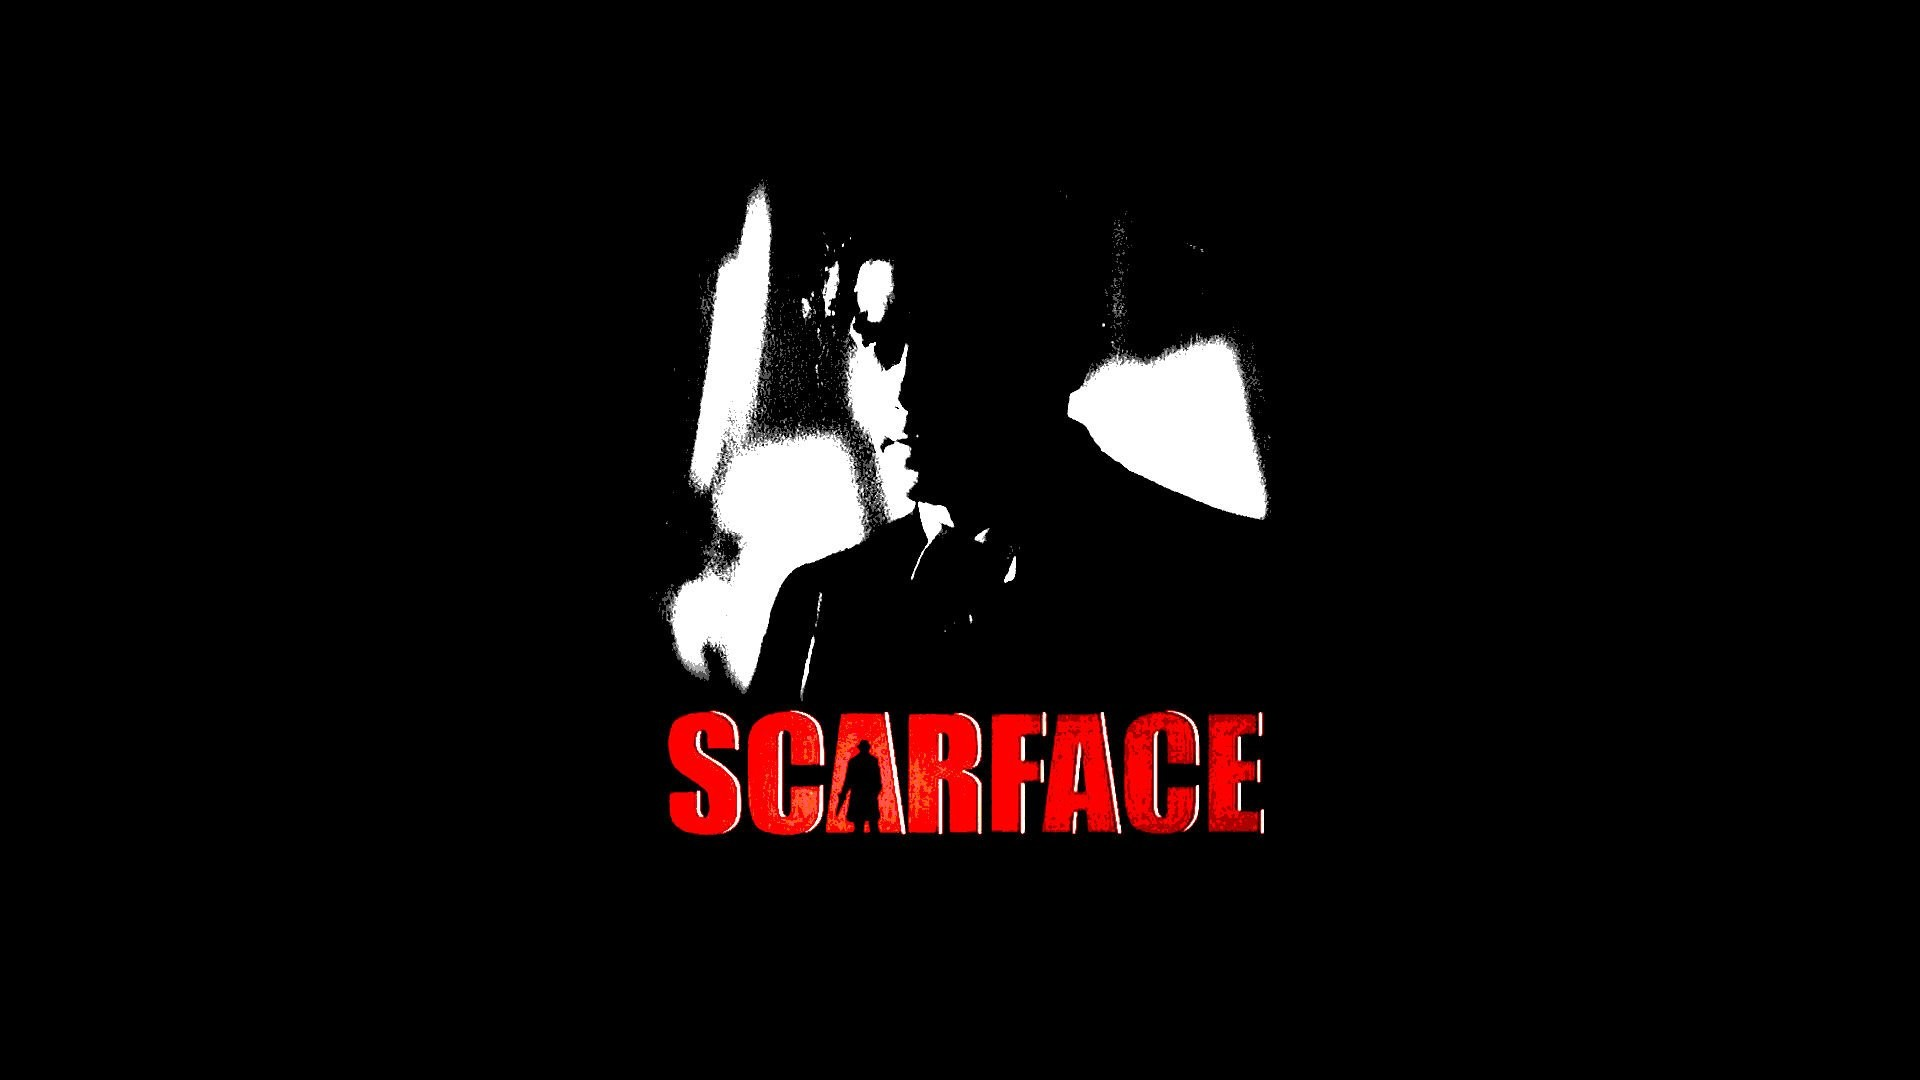 SCARFACE crime drama movie film poster wallpaper | | 333961 |  WallpaperUP